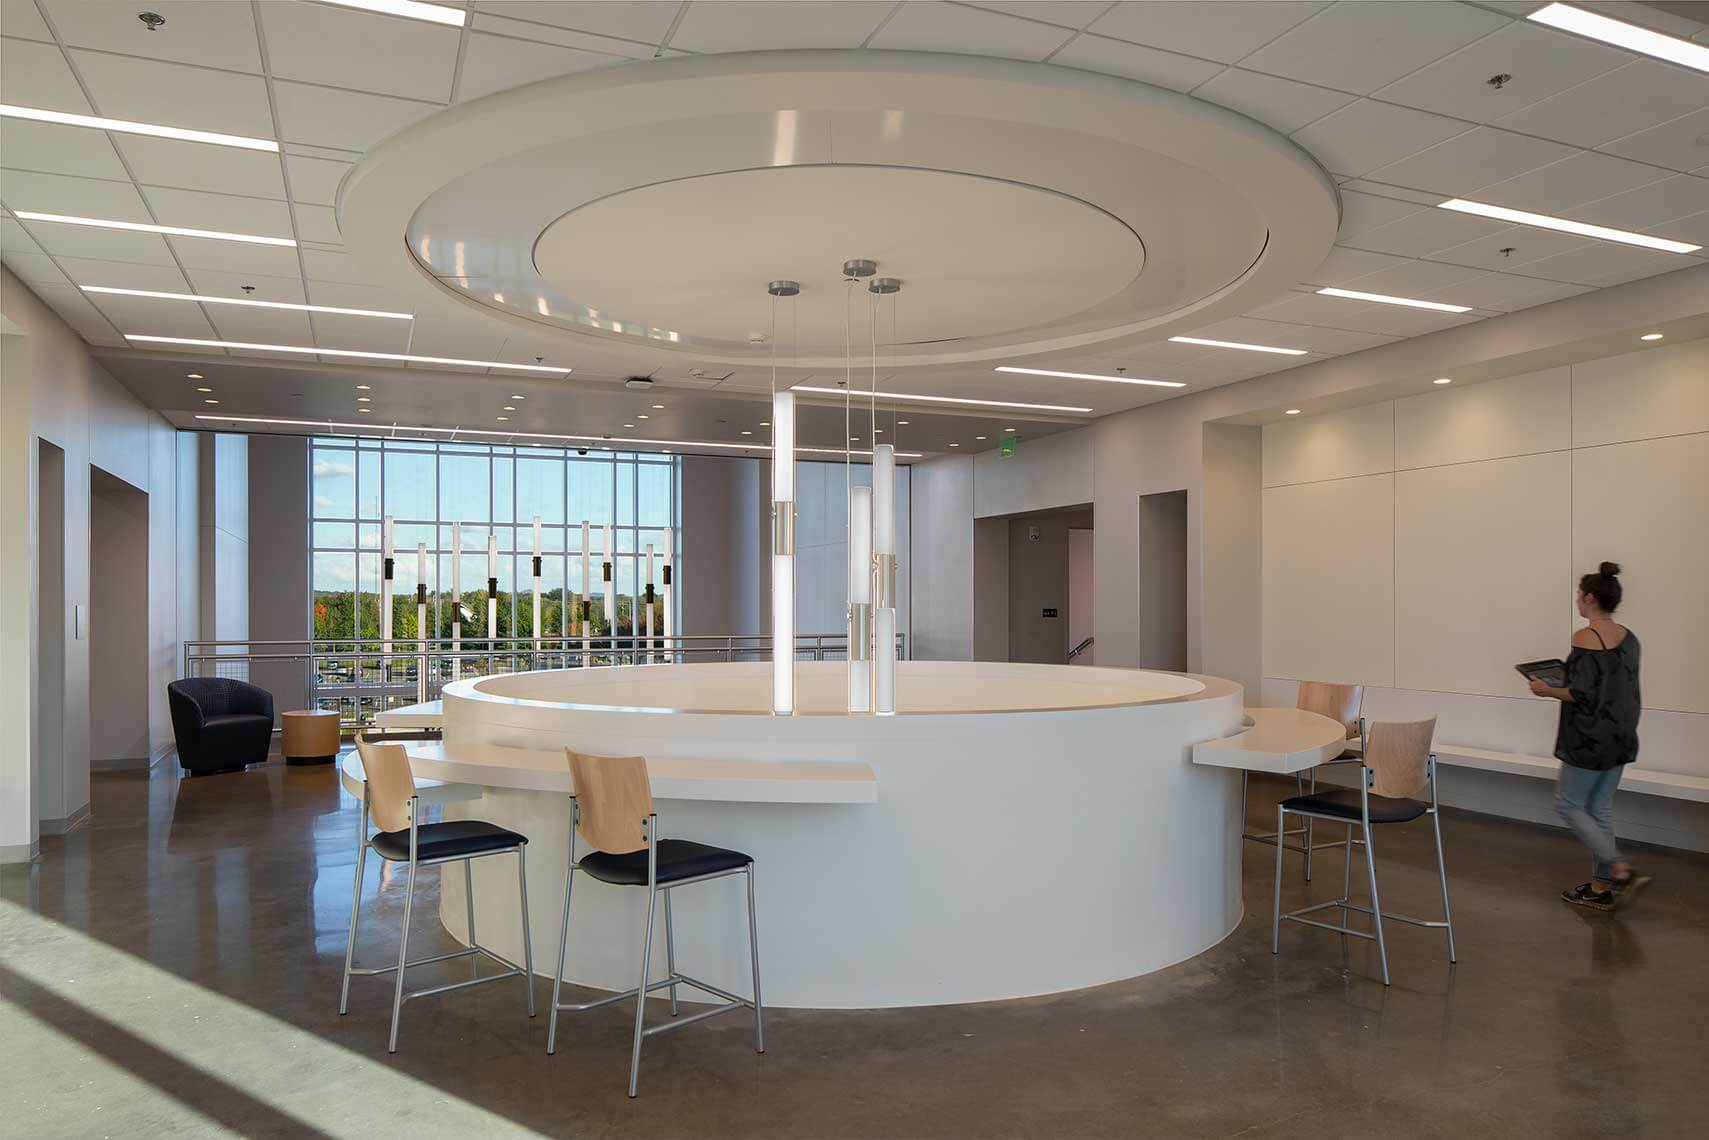 A collaboration area within the Middle Tennessee State University Academic Classroom Building